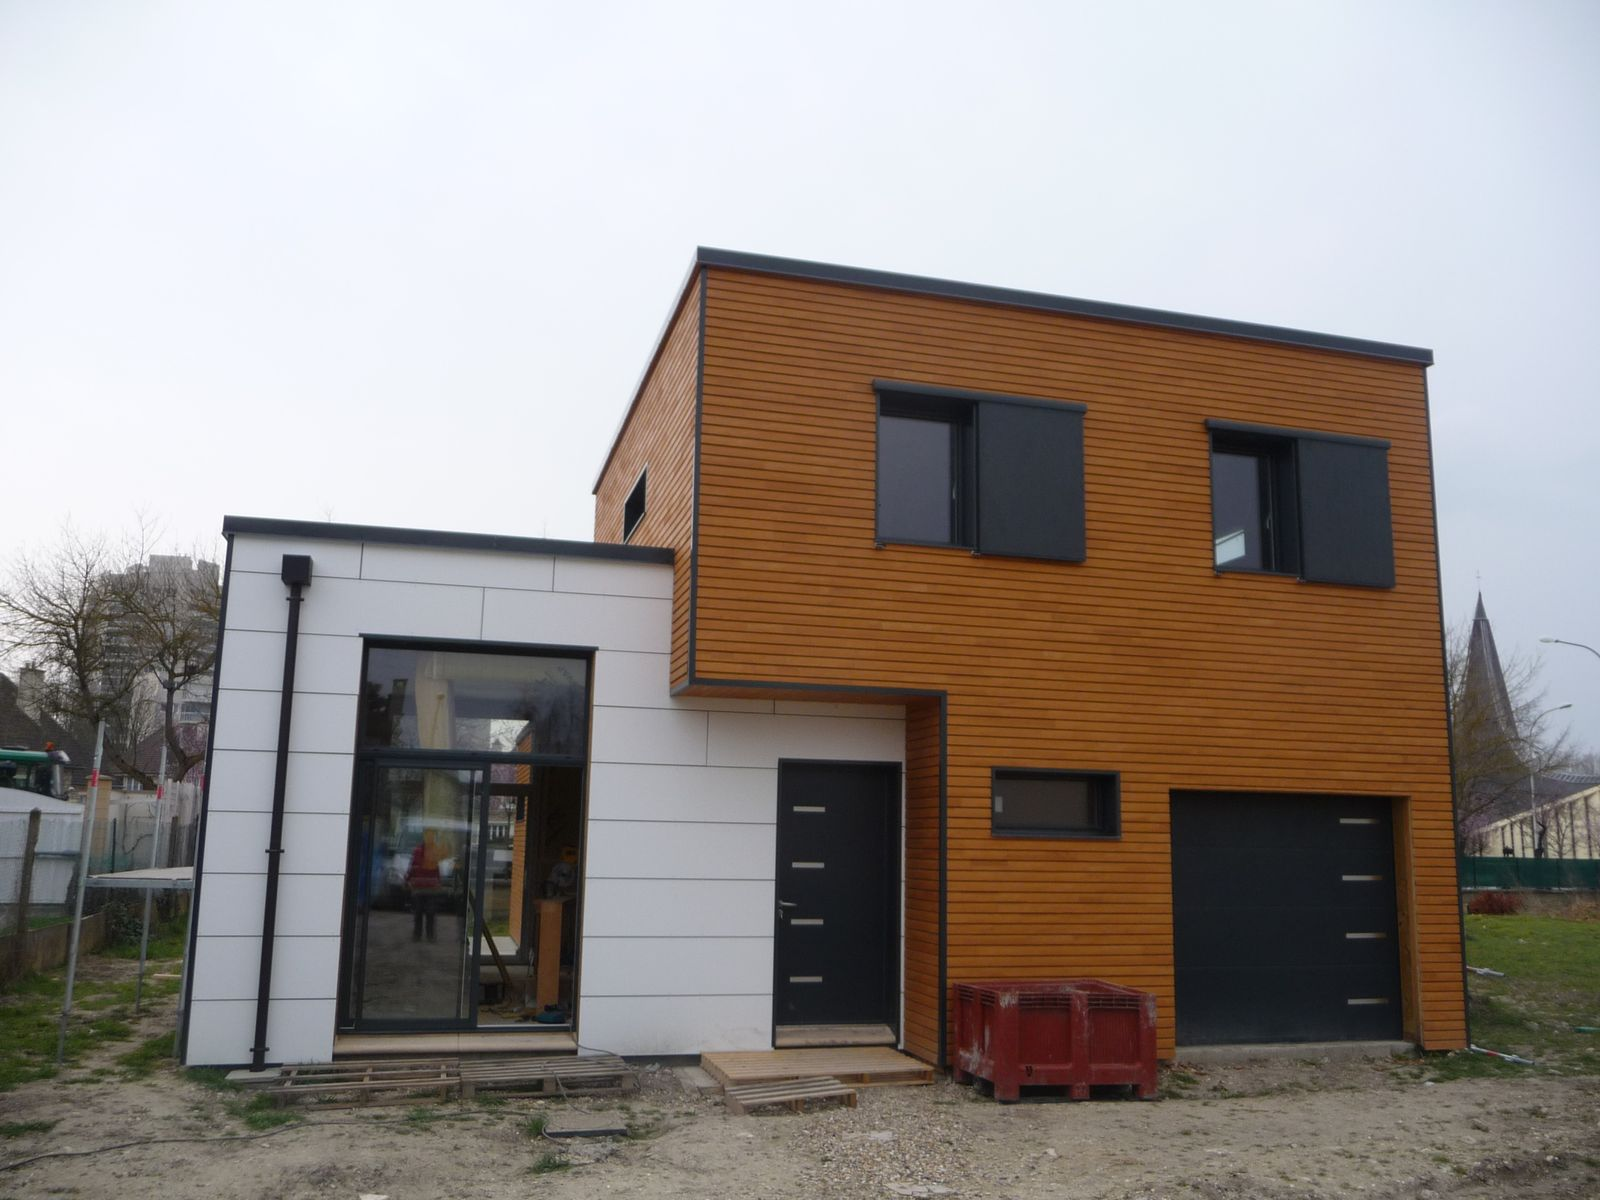 R alisation des maisons contemporaine bouny for Realisation maison